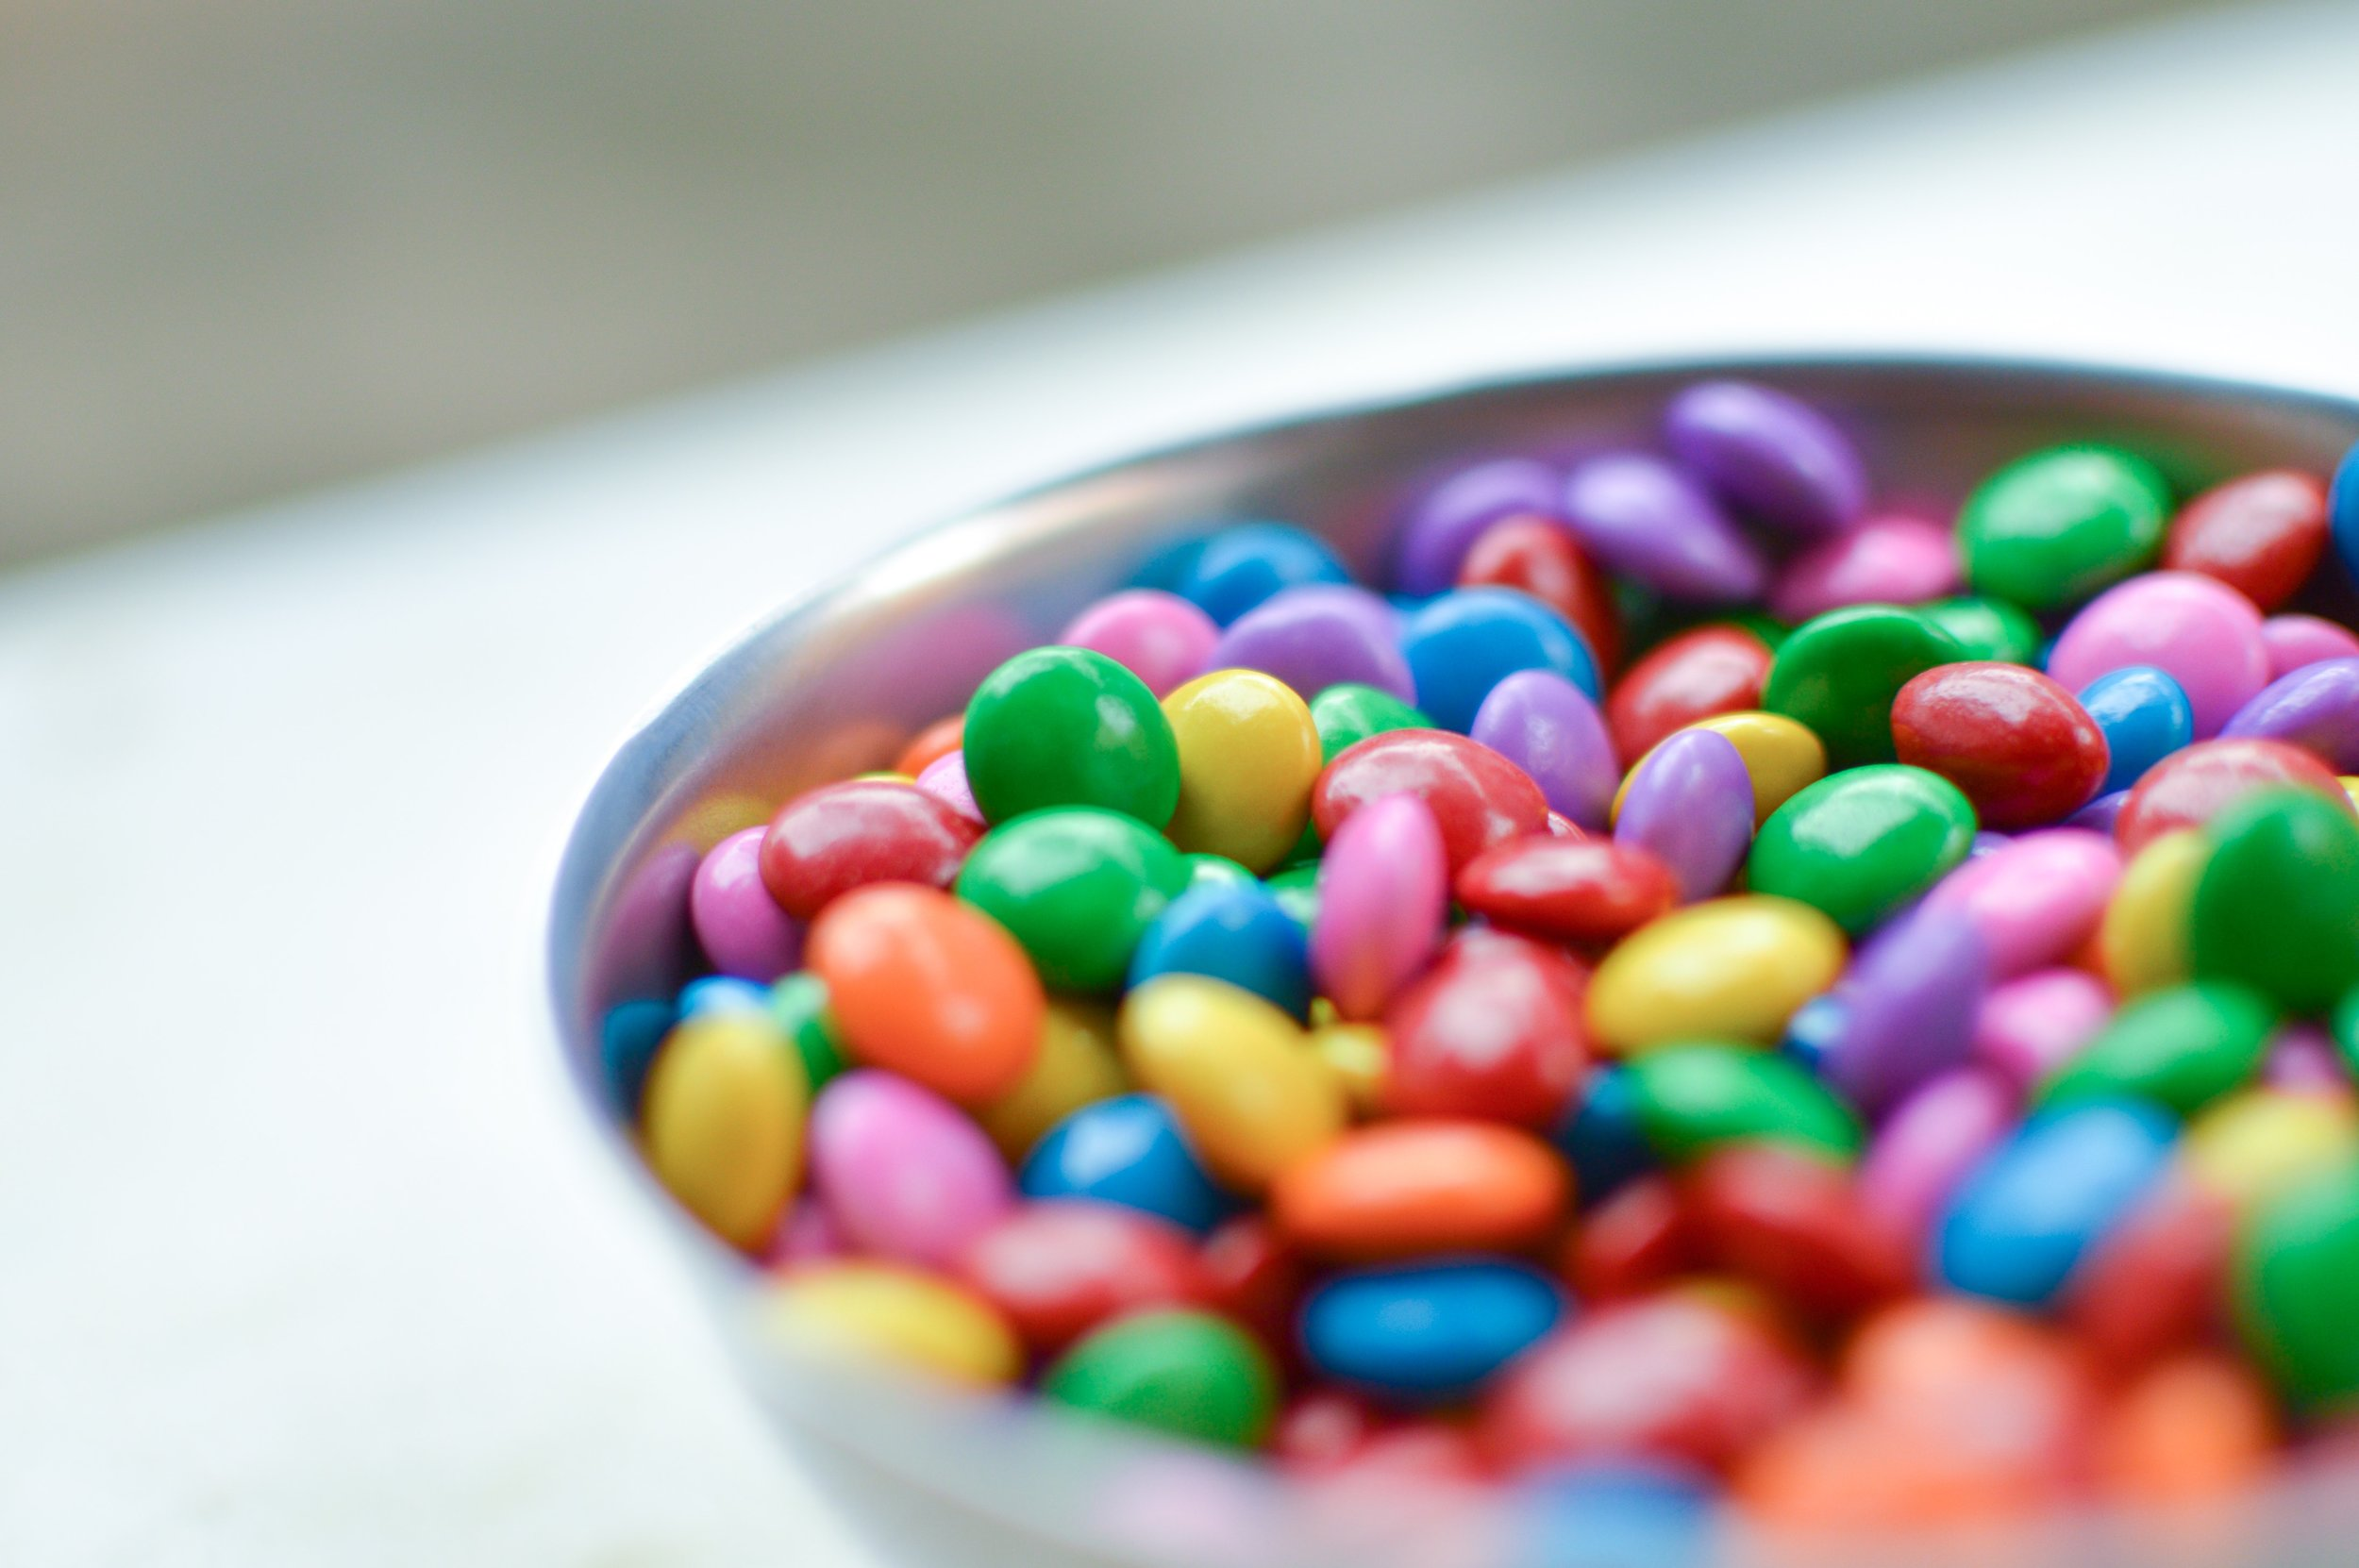 bowl-candy-chocolate-65547.jpg